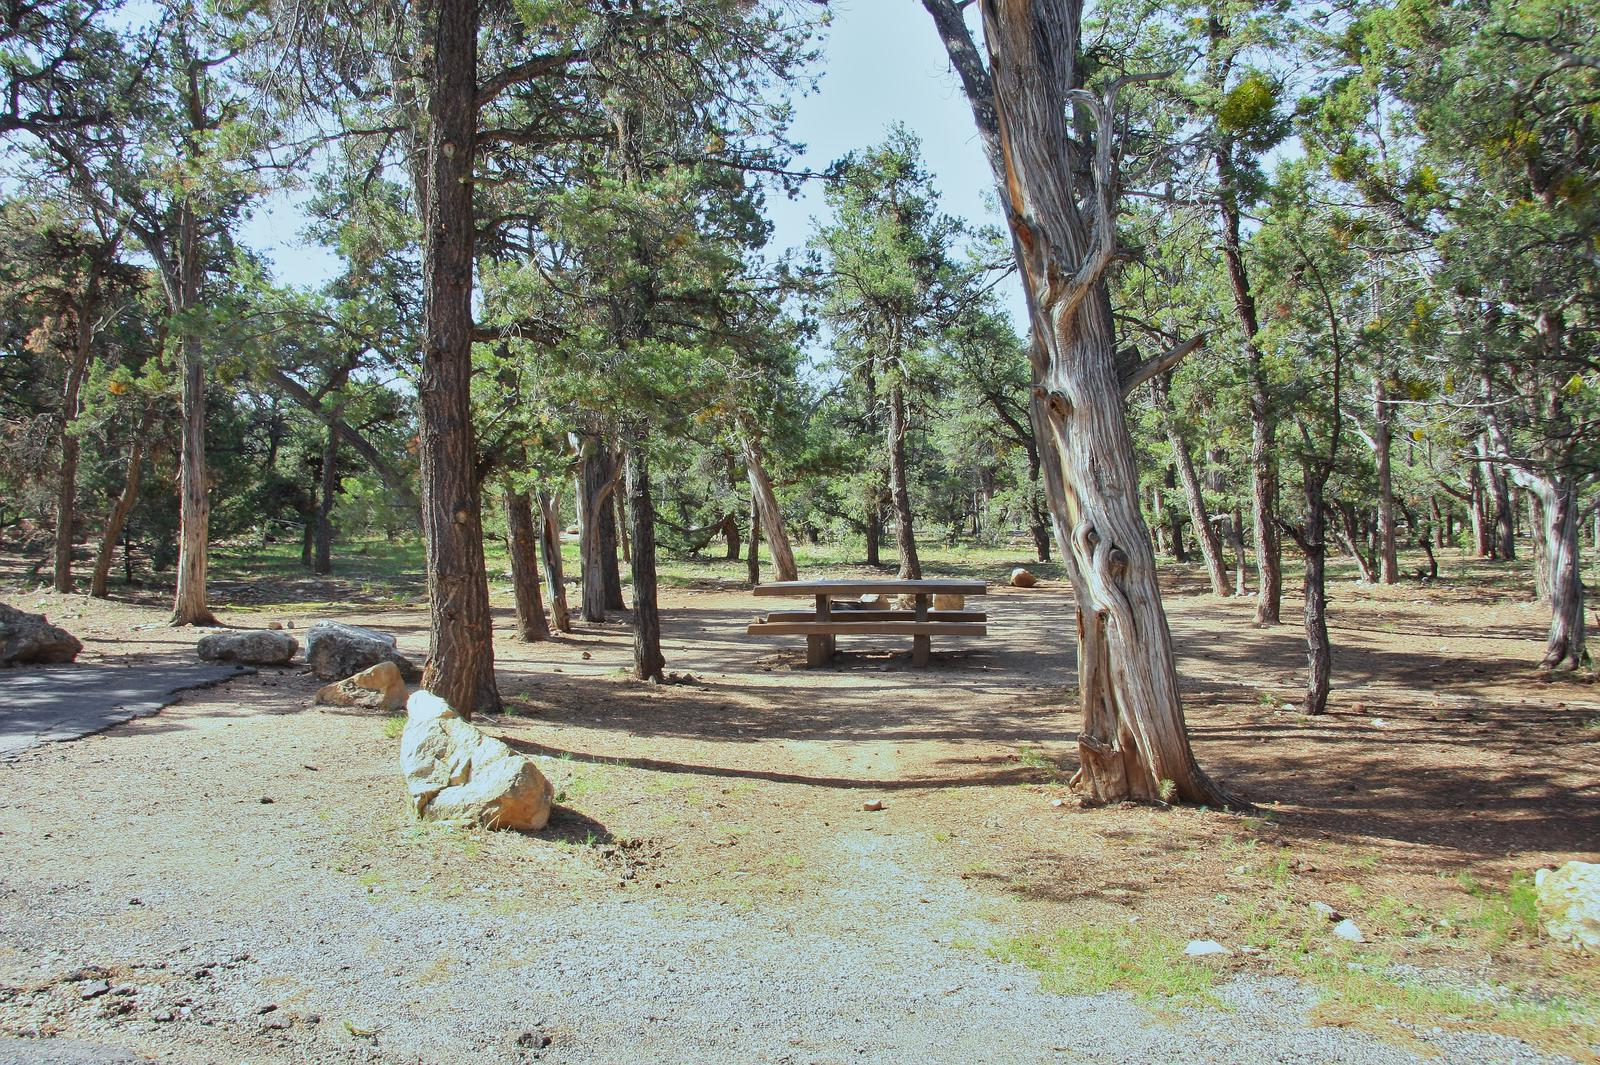 Picnic table, fire pit, and park spot, Mather CampgroundPicnic table, fire pit, and park spot for Oak Loop 251, Mather Campground